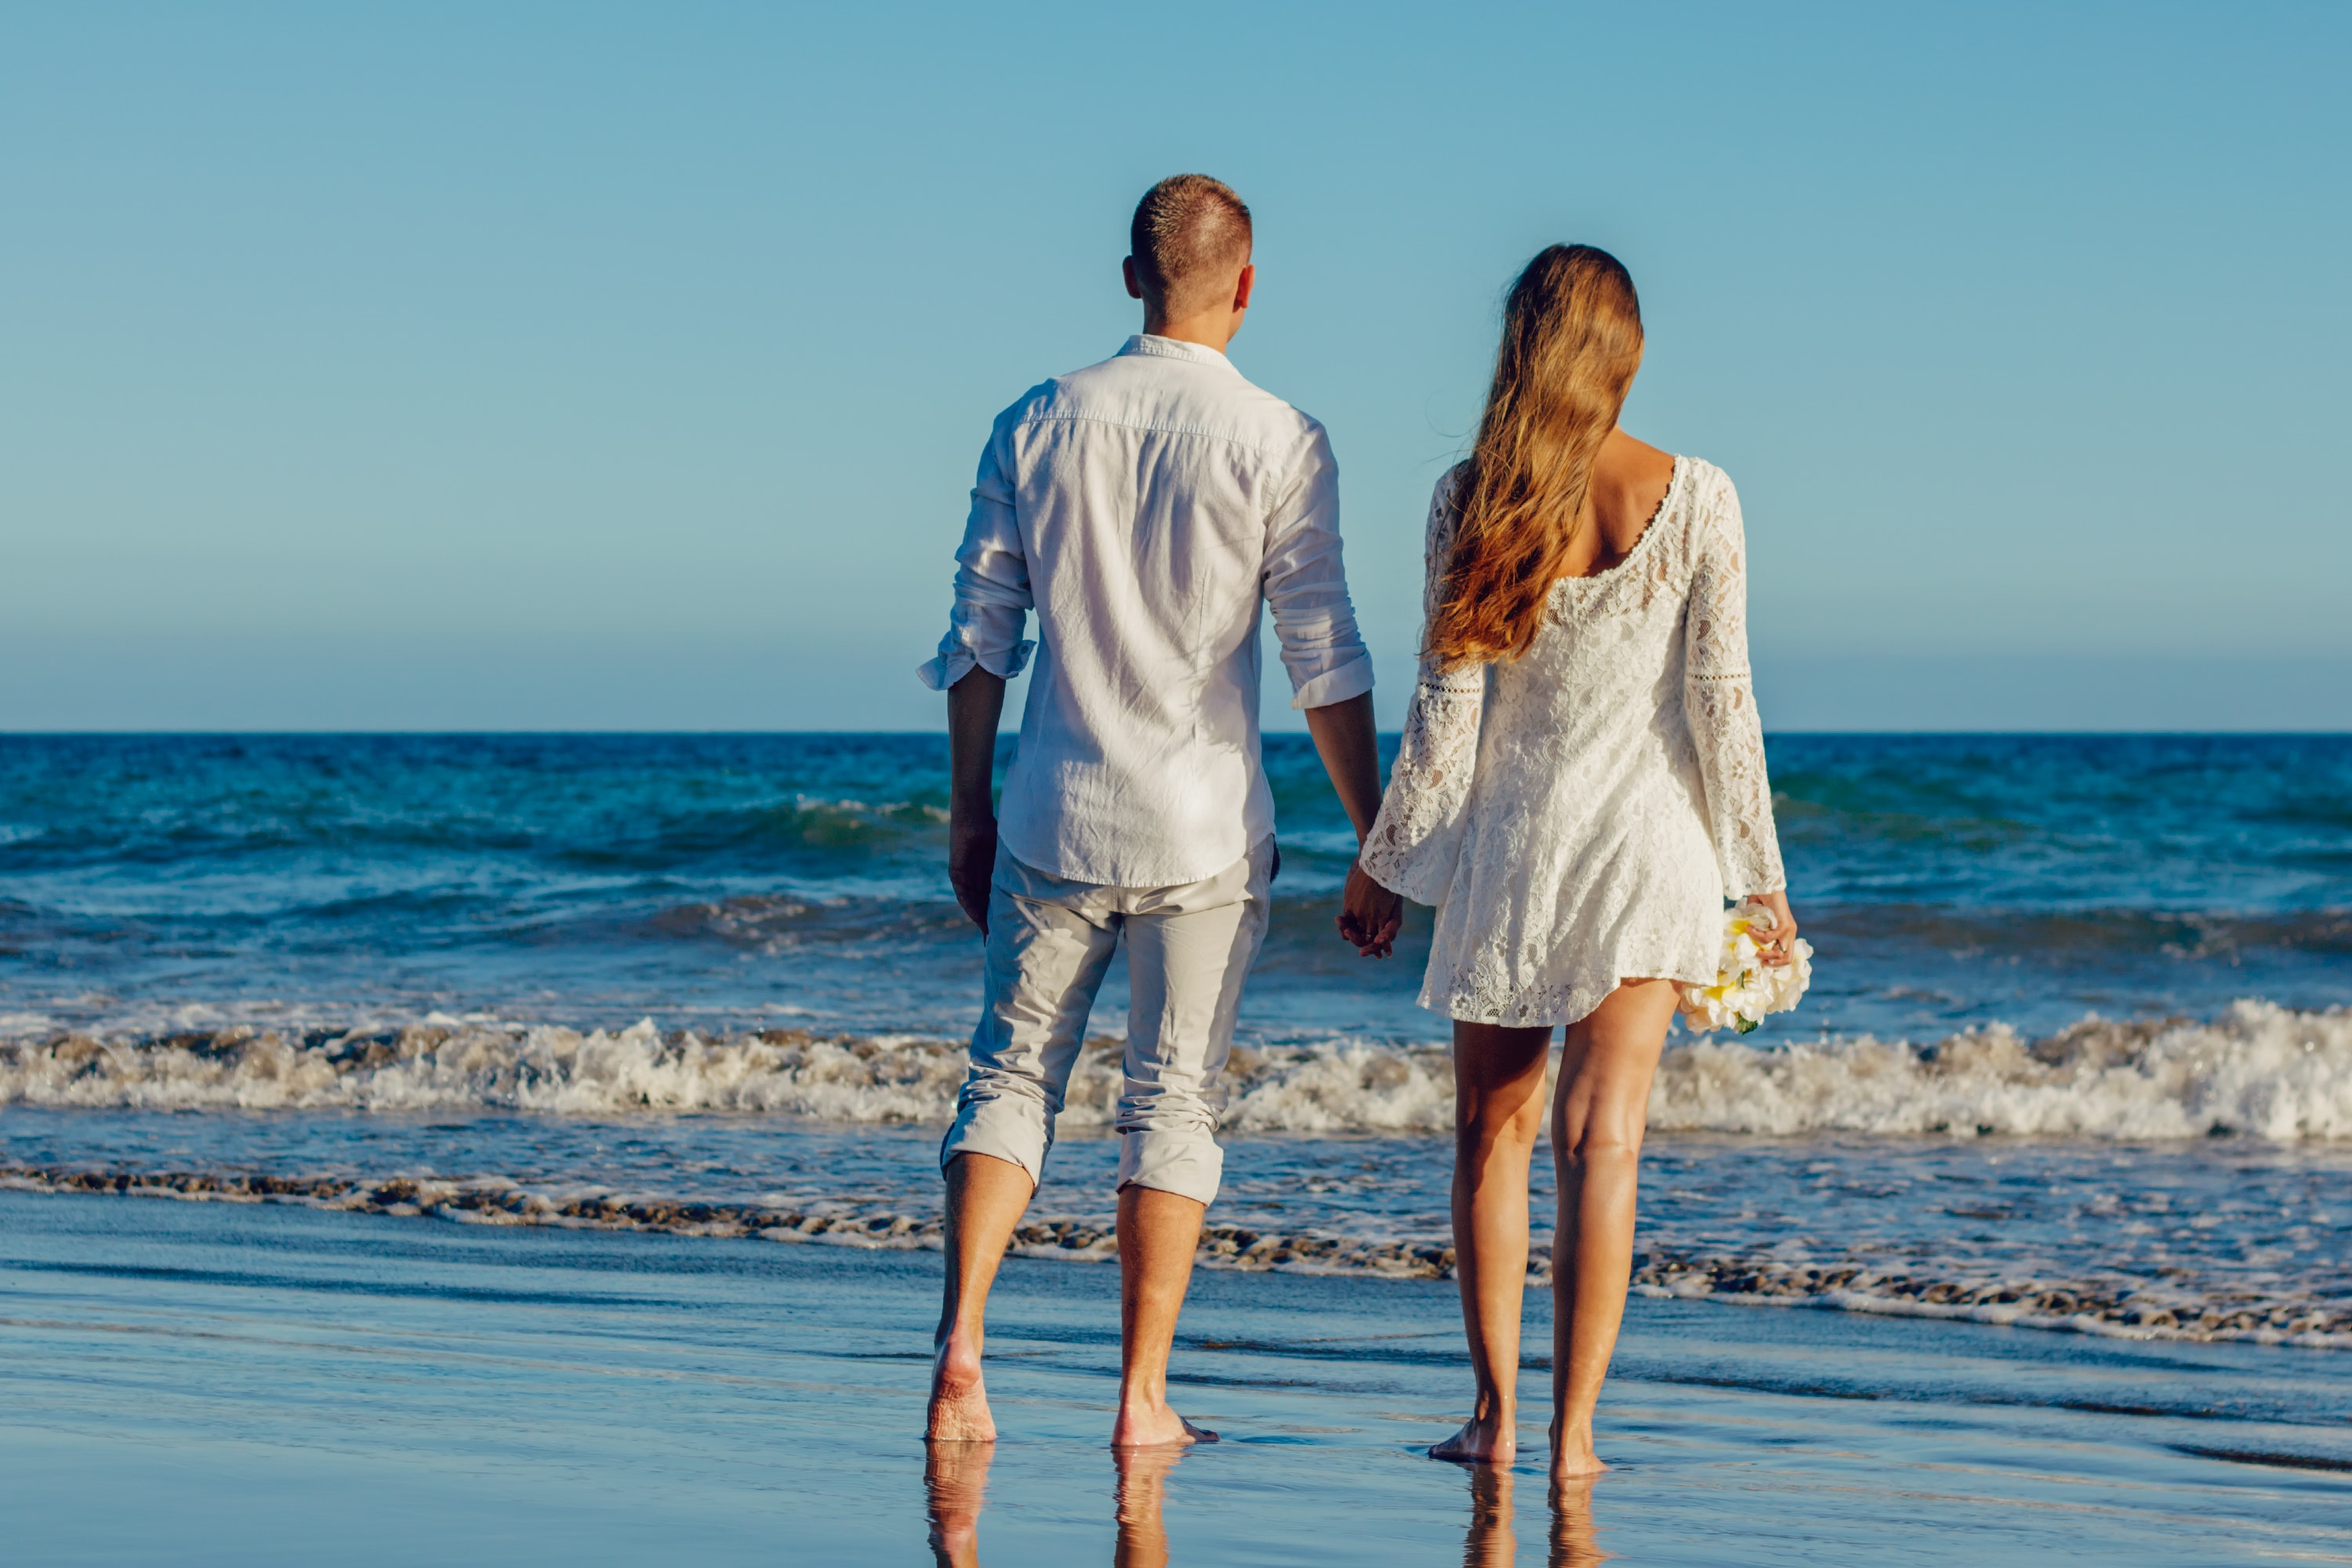 Rear view of couple on beach against clear sky photo